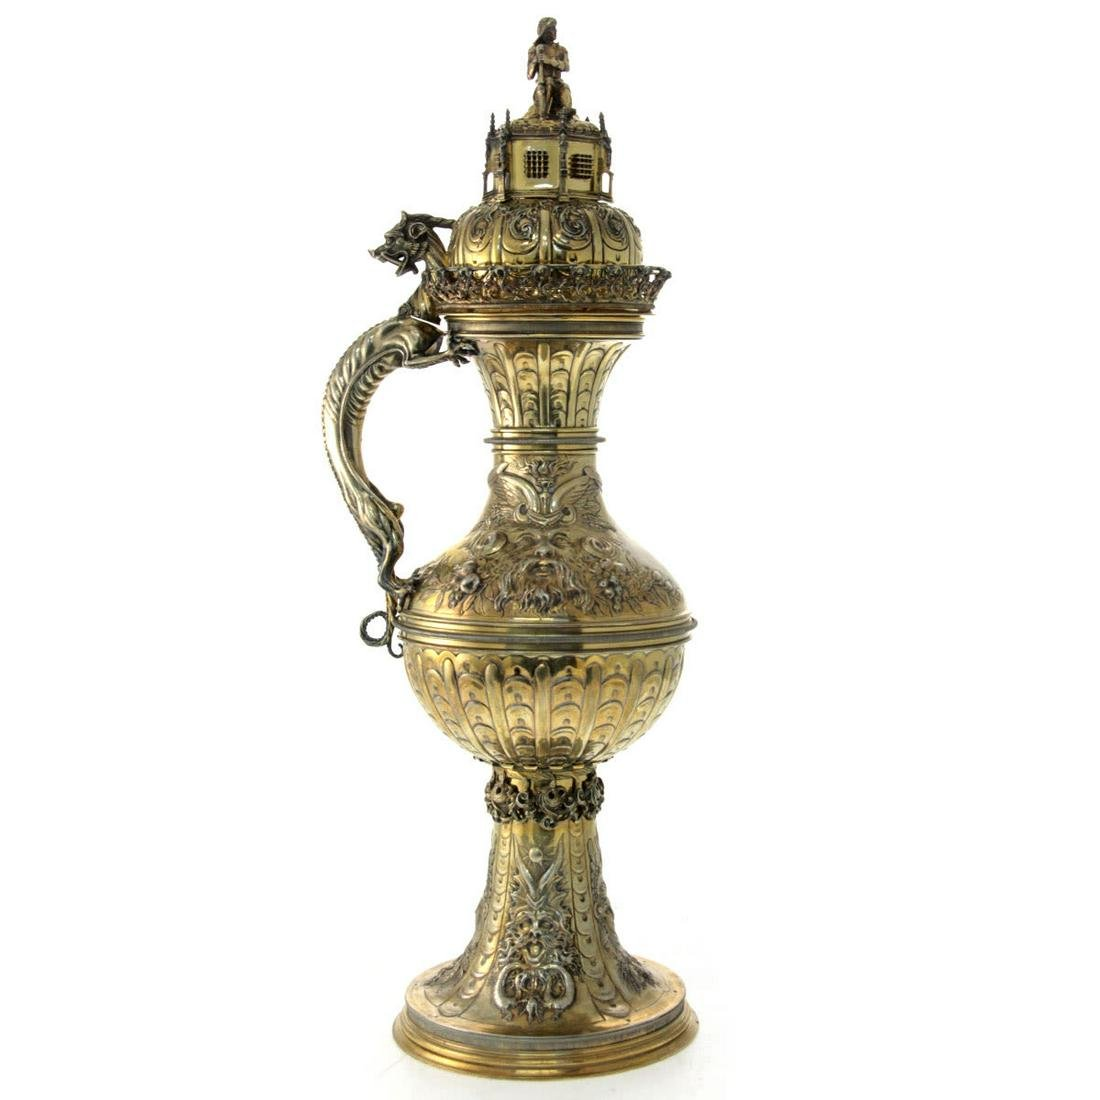 Rare Huge Silver Gilt Historic Ewer, Hanau, Germany,